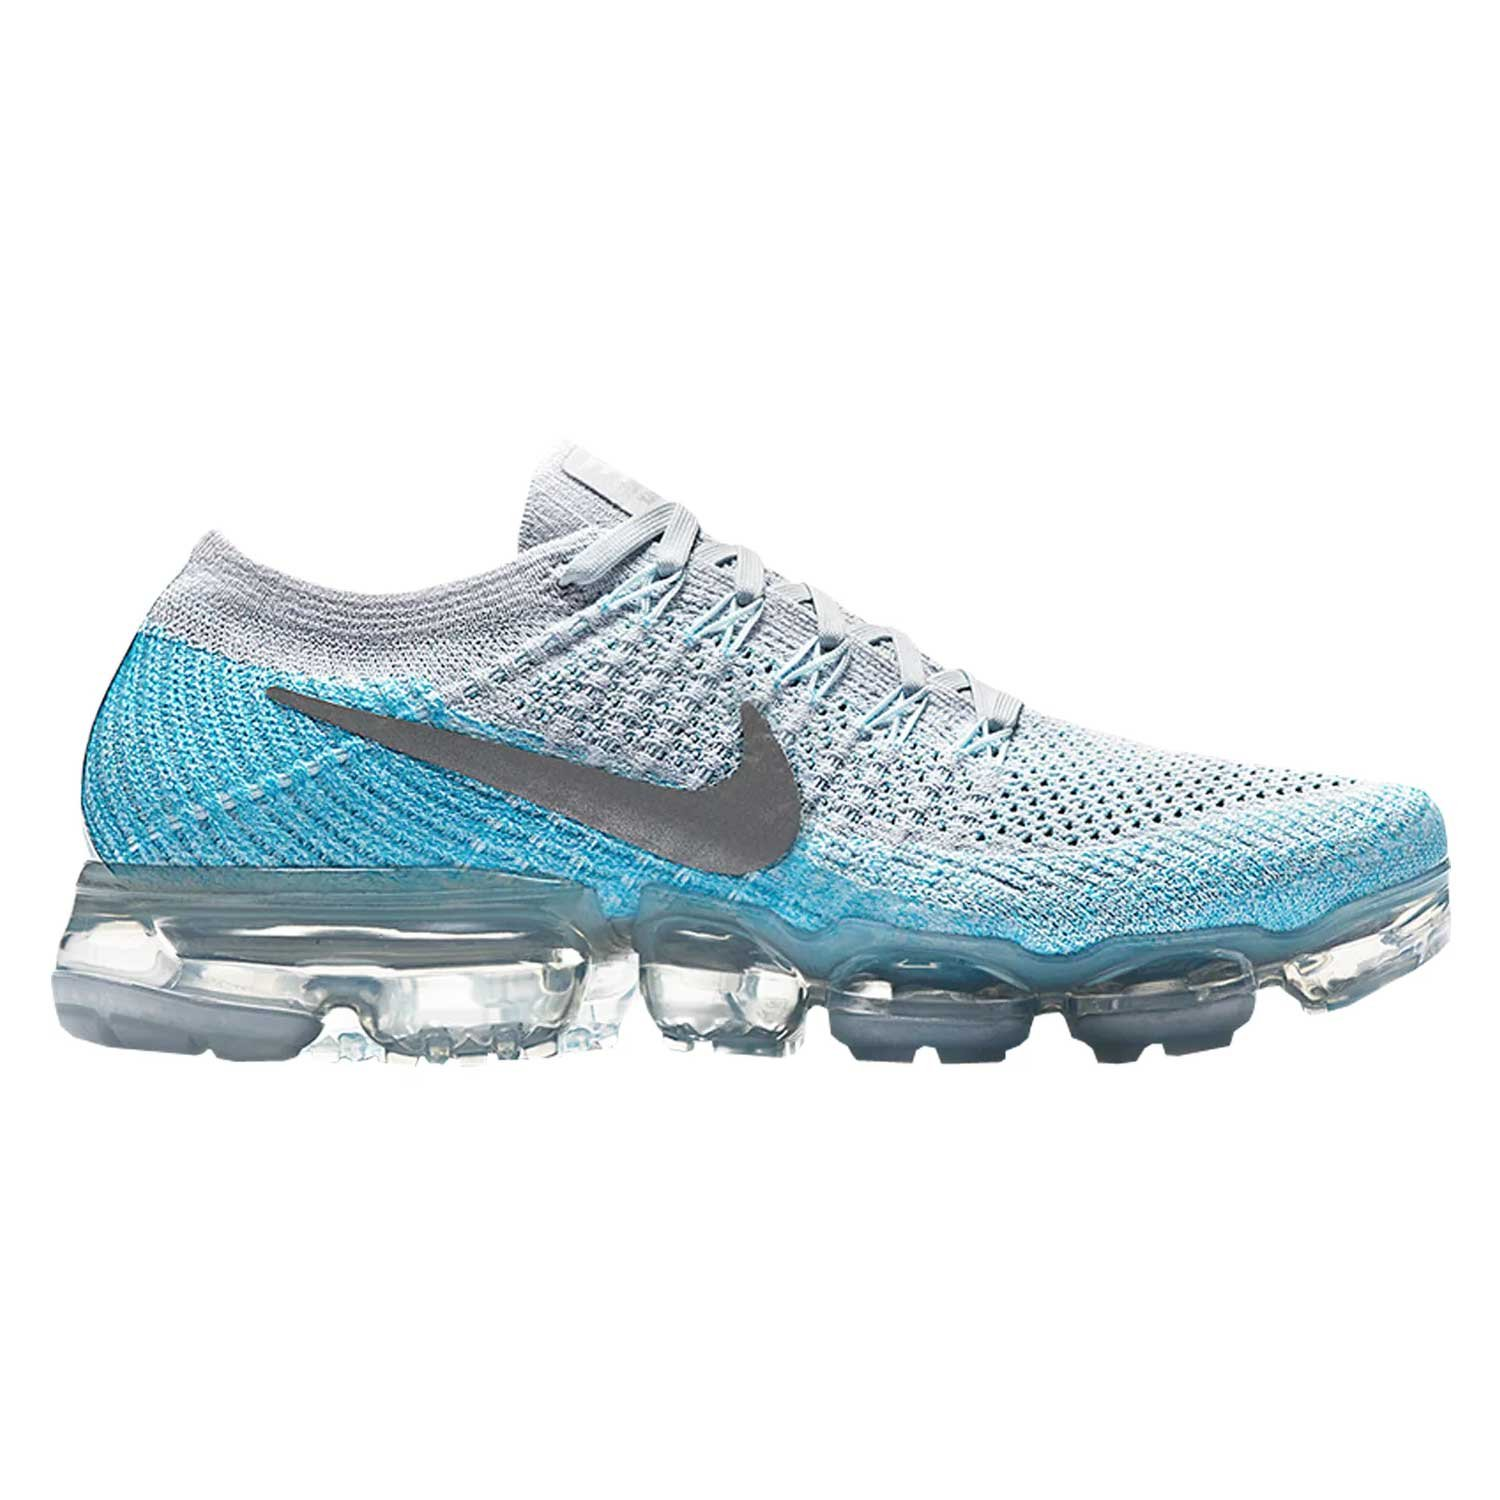 new products 3586c 54208 Nike WMNS Air Vapormax Flyknit Ice Flash 849557-014 Platinum/Blue Women's  Running Shoes